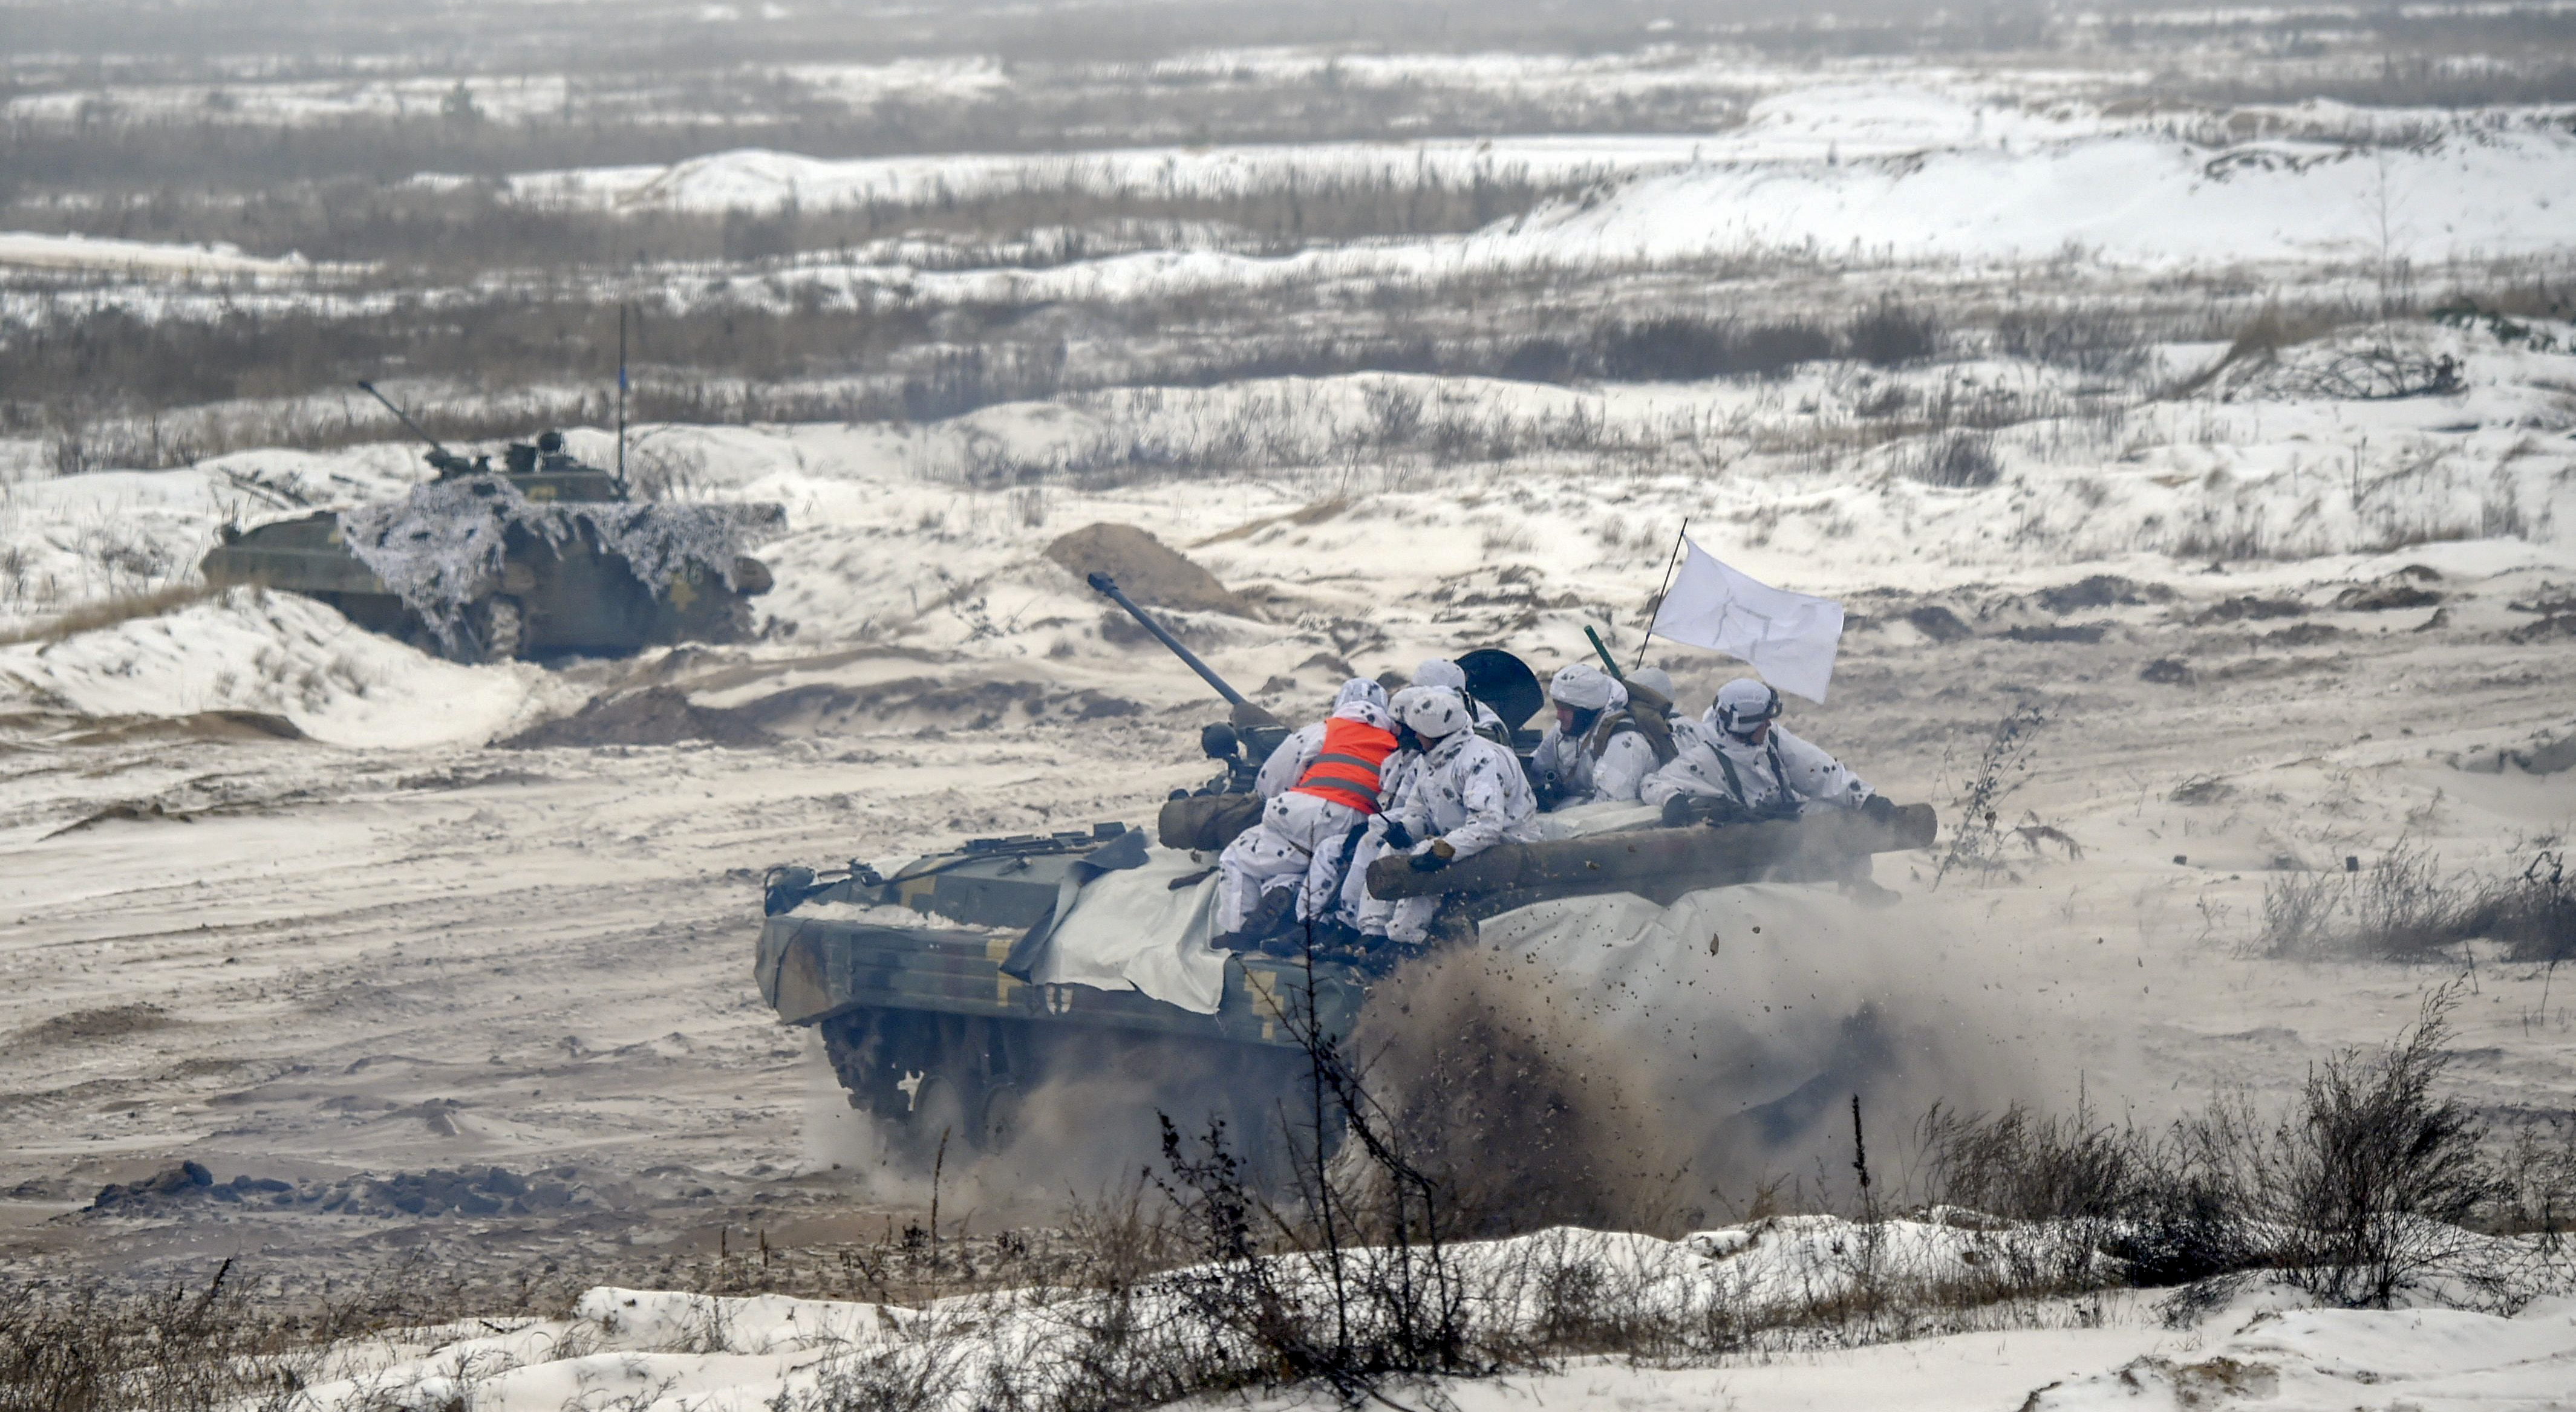 Ukrainian servicemen on armored personal carriers (APC) take part in brigade tactical exercises with combat shooting near Goncharivske willage, Chernihiv region, not far from the border with Russia on December 3, 2018. - Tensions between Ukraine and Russia rose on November 25, when Russian forces seized three Ukranian navy vessels and their crew. Ukraine imposed martial law for 30 days in 10 regions that border Russia, the Black Sea and the Azov Sea on November 28. (SERGEI SUPINSKY/AFP/Getty Images)